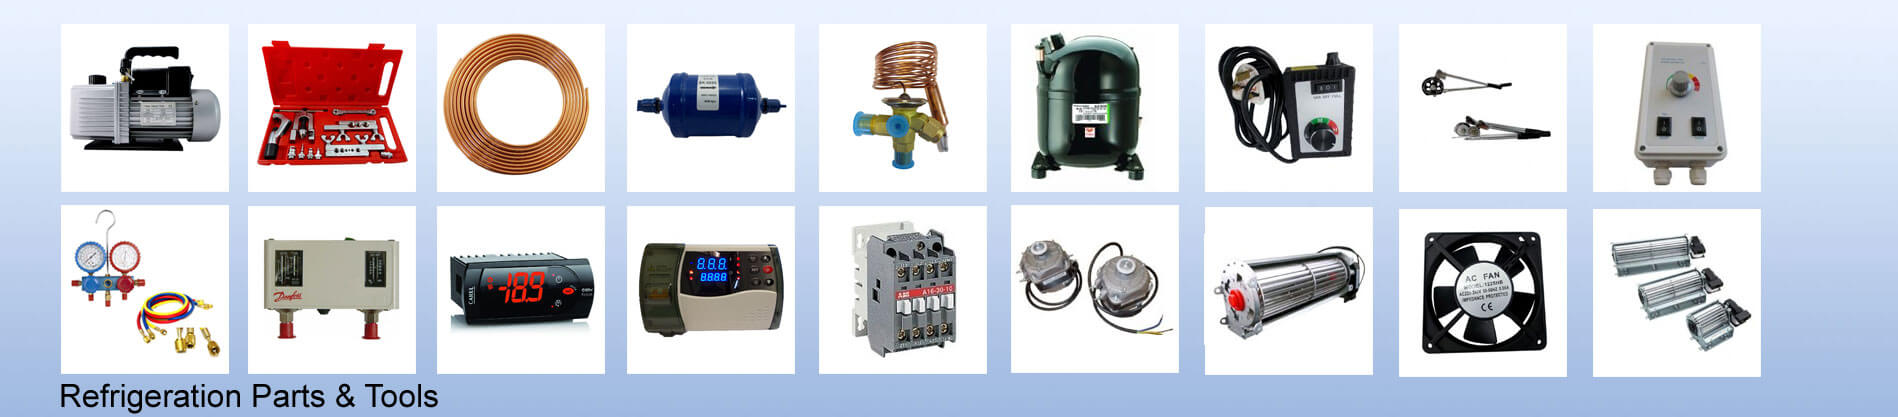 Refrigeration Parts & Tools